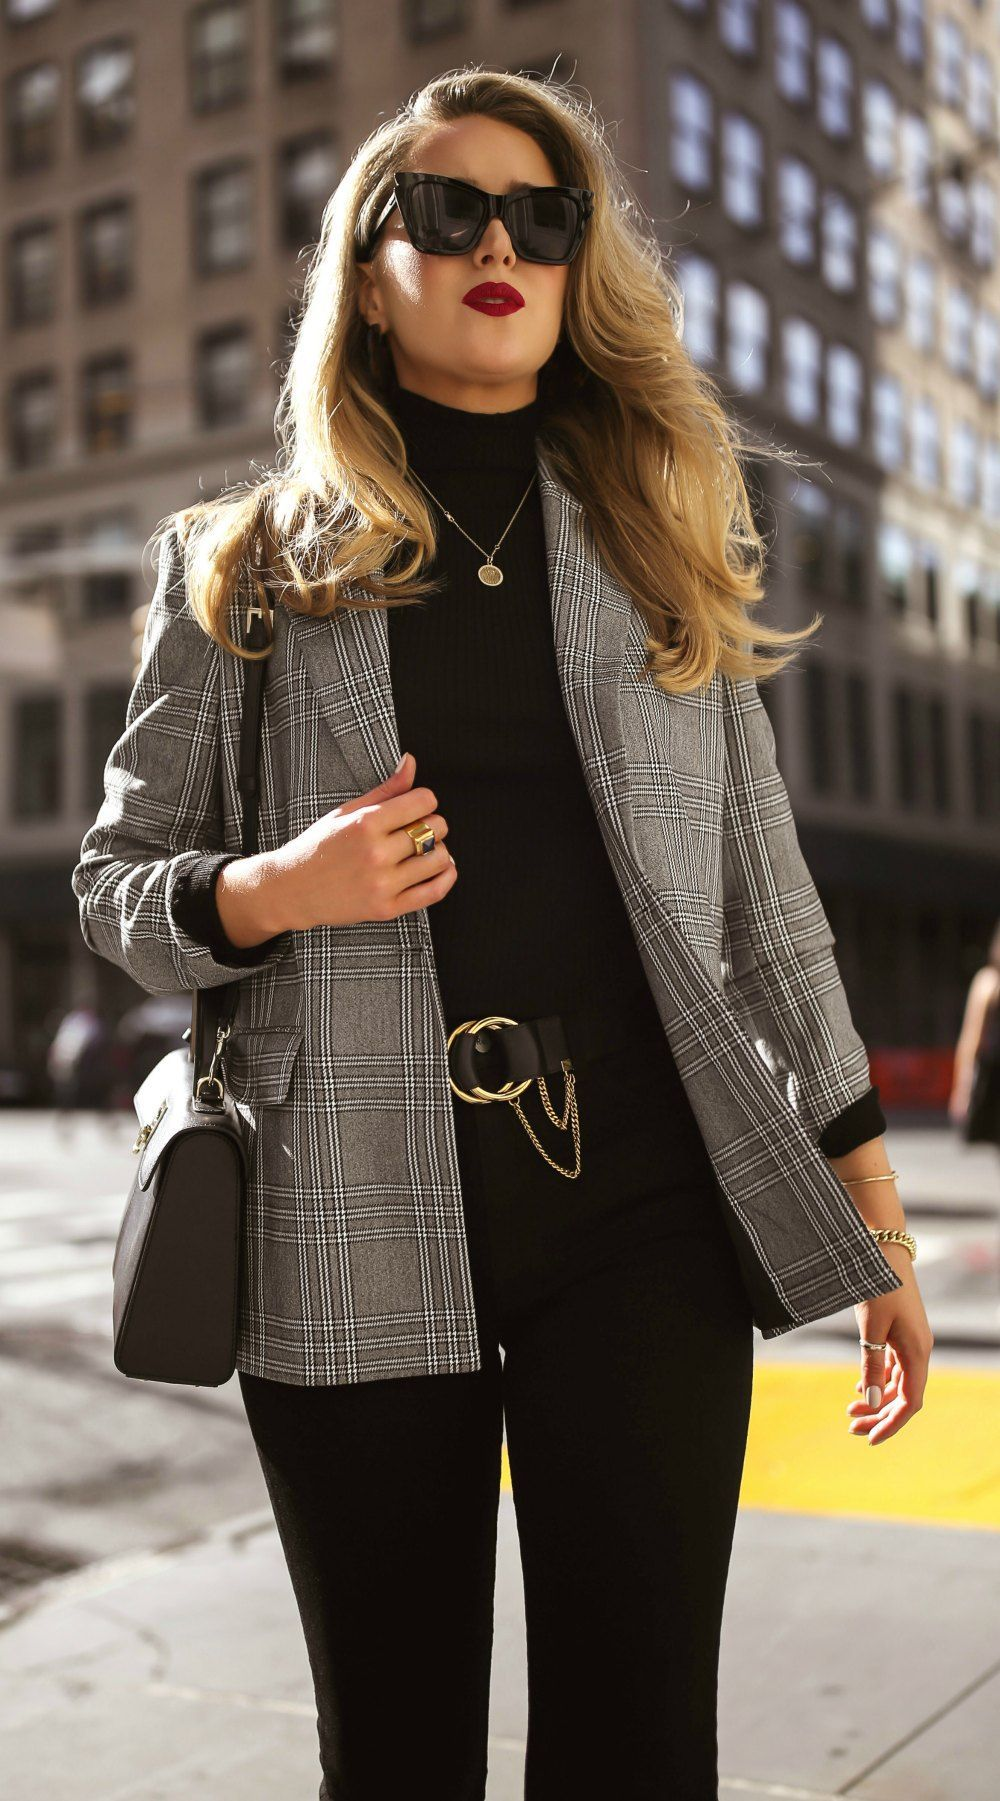 Click For Outfit Details Grey White Checked Over Sized Blazer Black Turtleneck Sweater Black Retro C Turtleneck Outfit Black Turtleneck Outfit Fashion